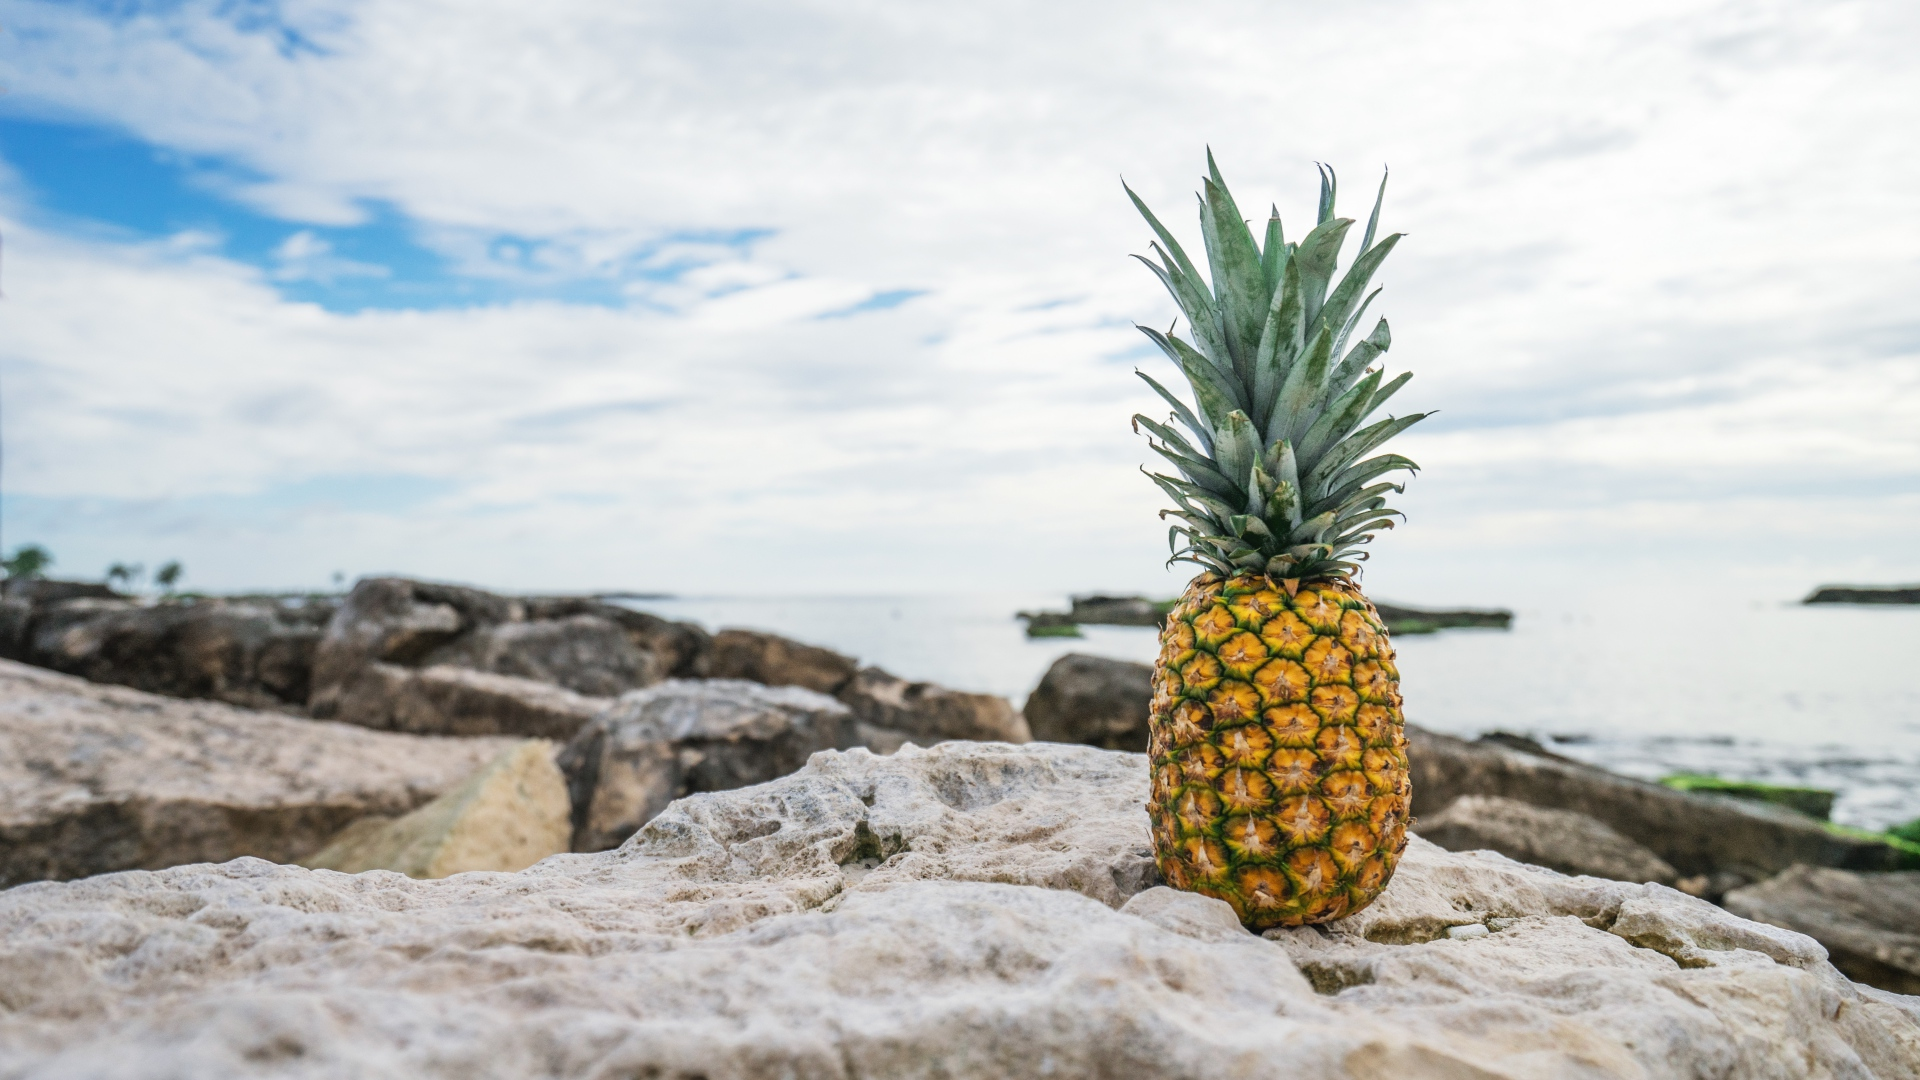 pineapple photography hd wallpaper 61704